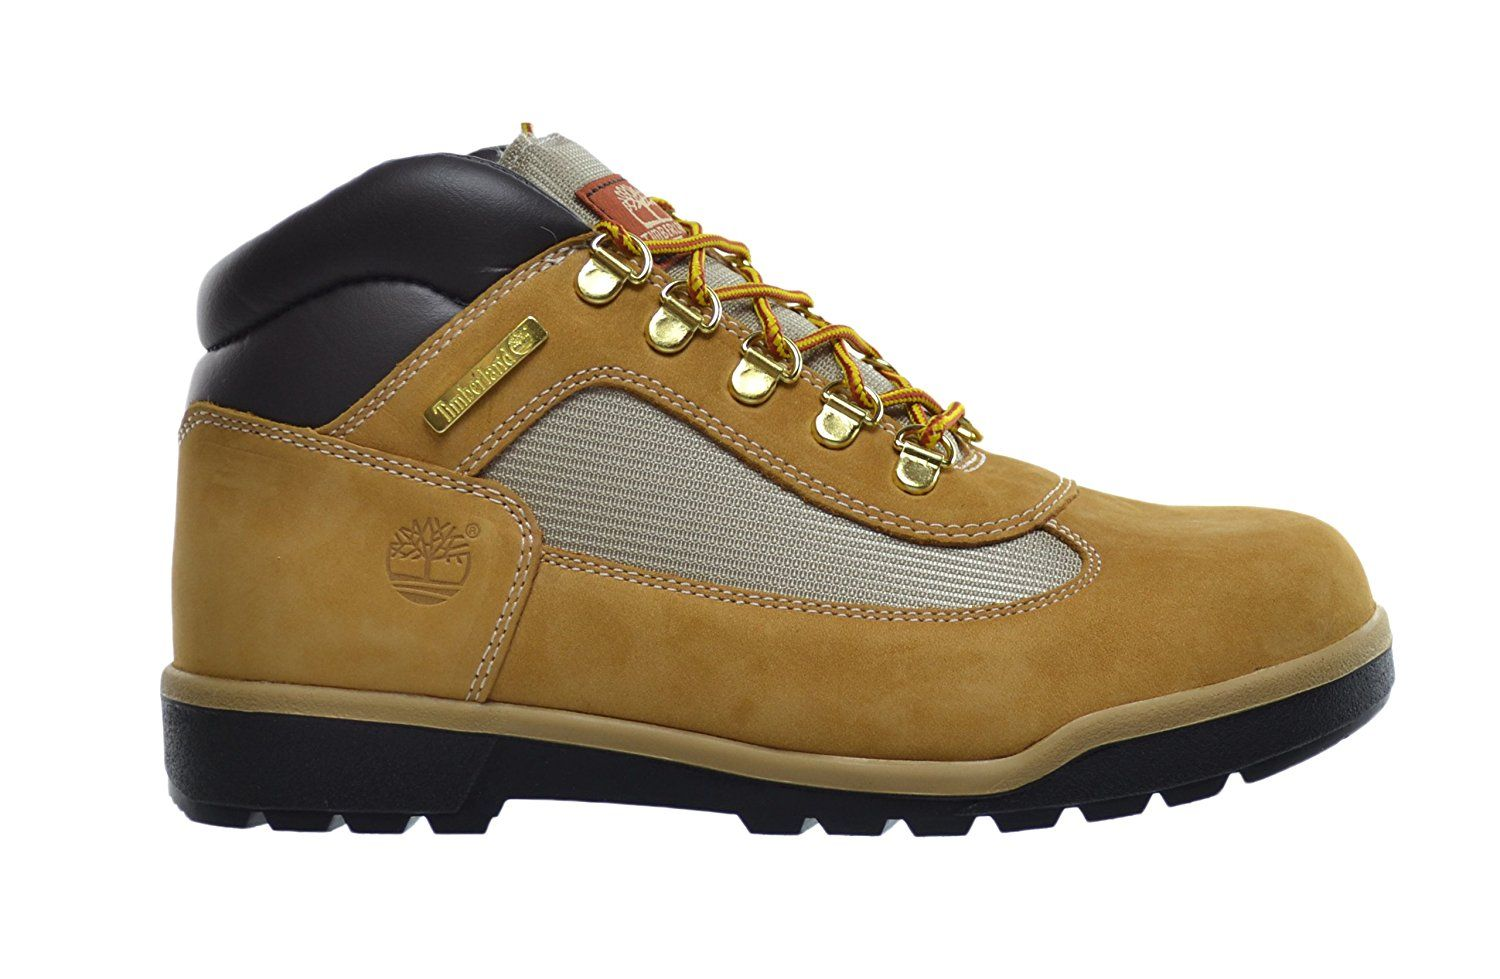 69a9a90bdc3 Timberland Big Kids Leather And Fabric Field Boots Wheat 15945 ...